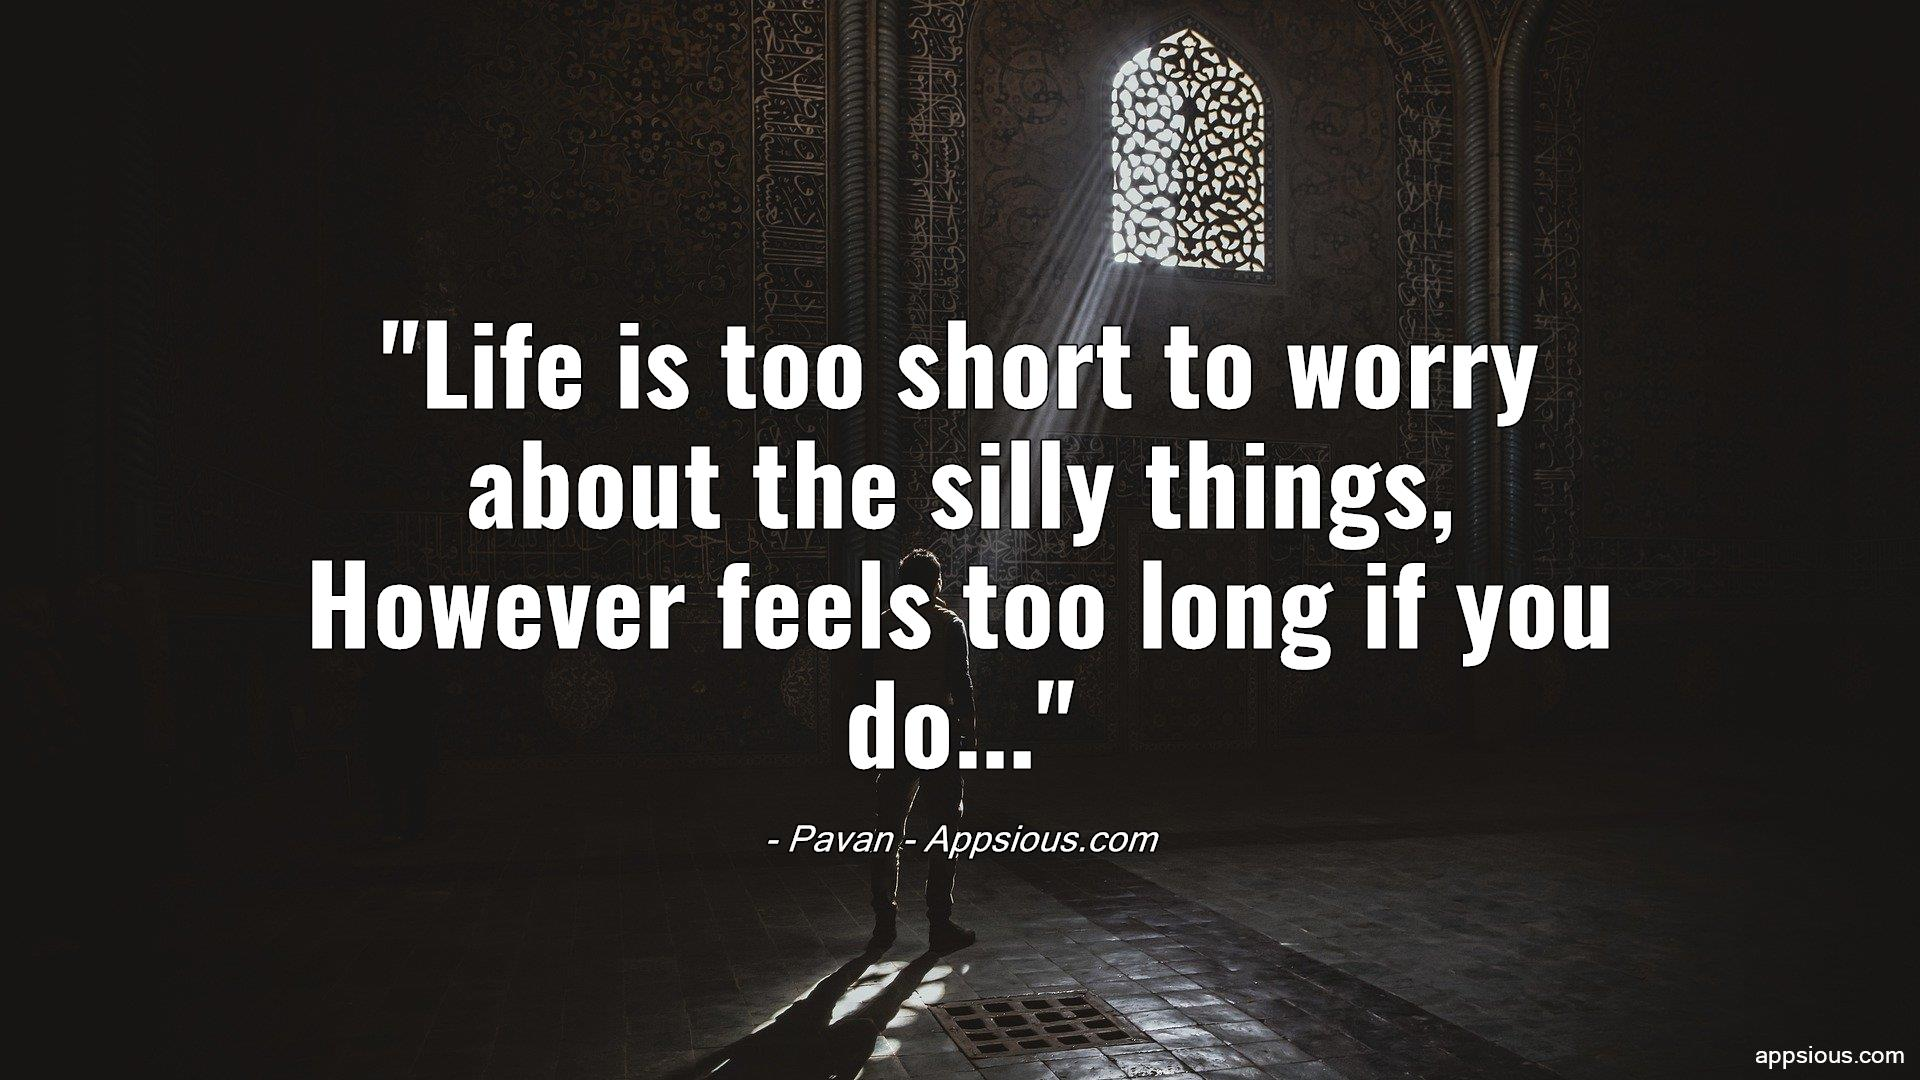 Life is too short to worry about the silly things, However feels too long if you do...